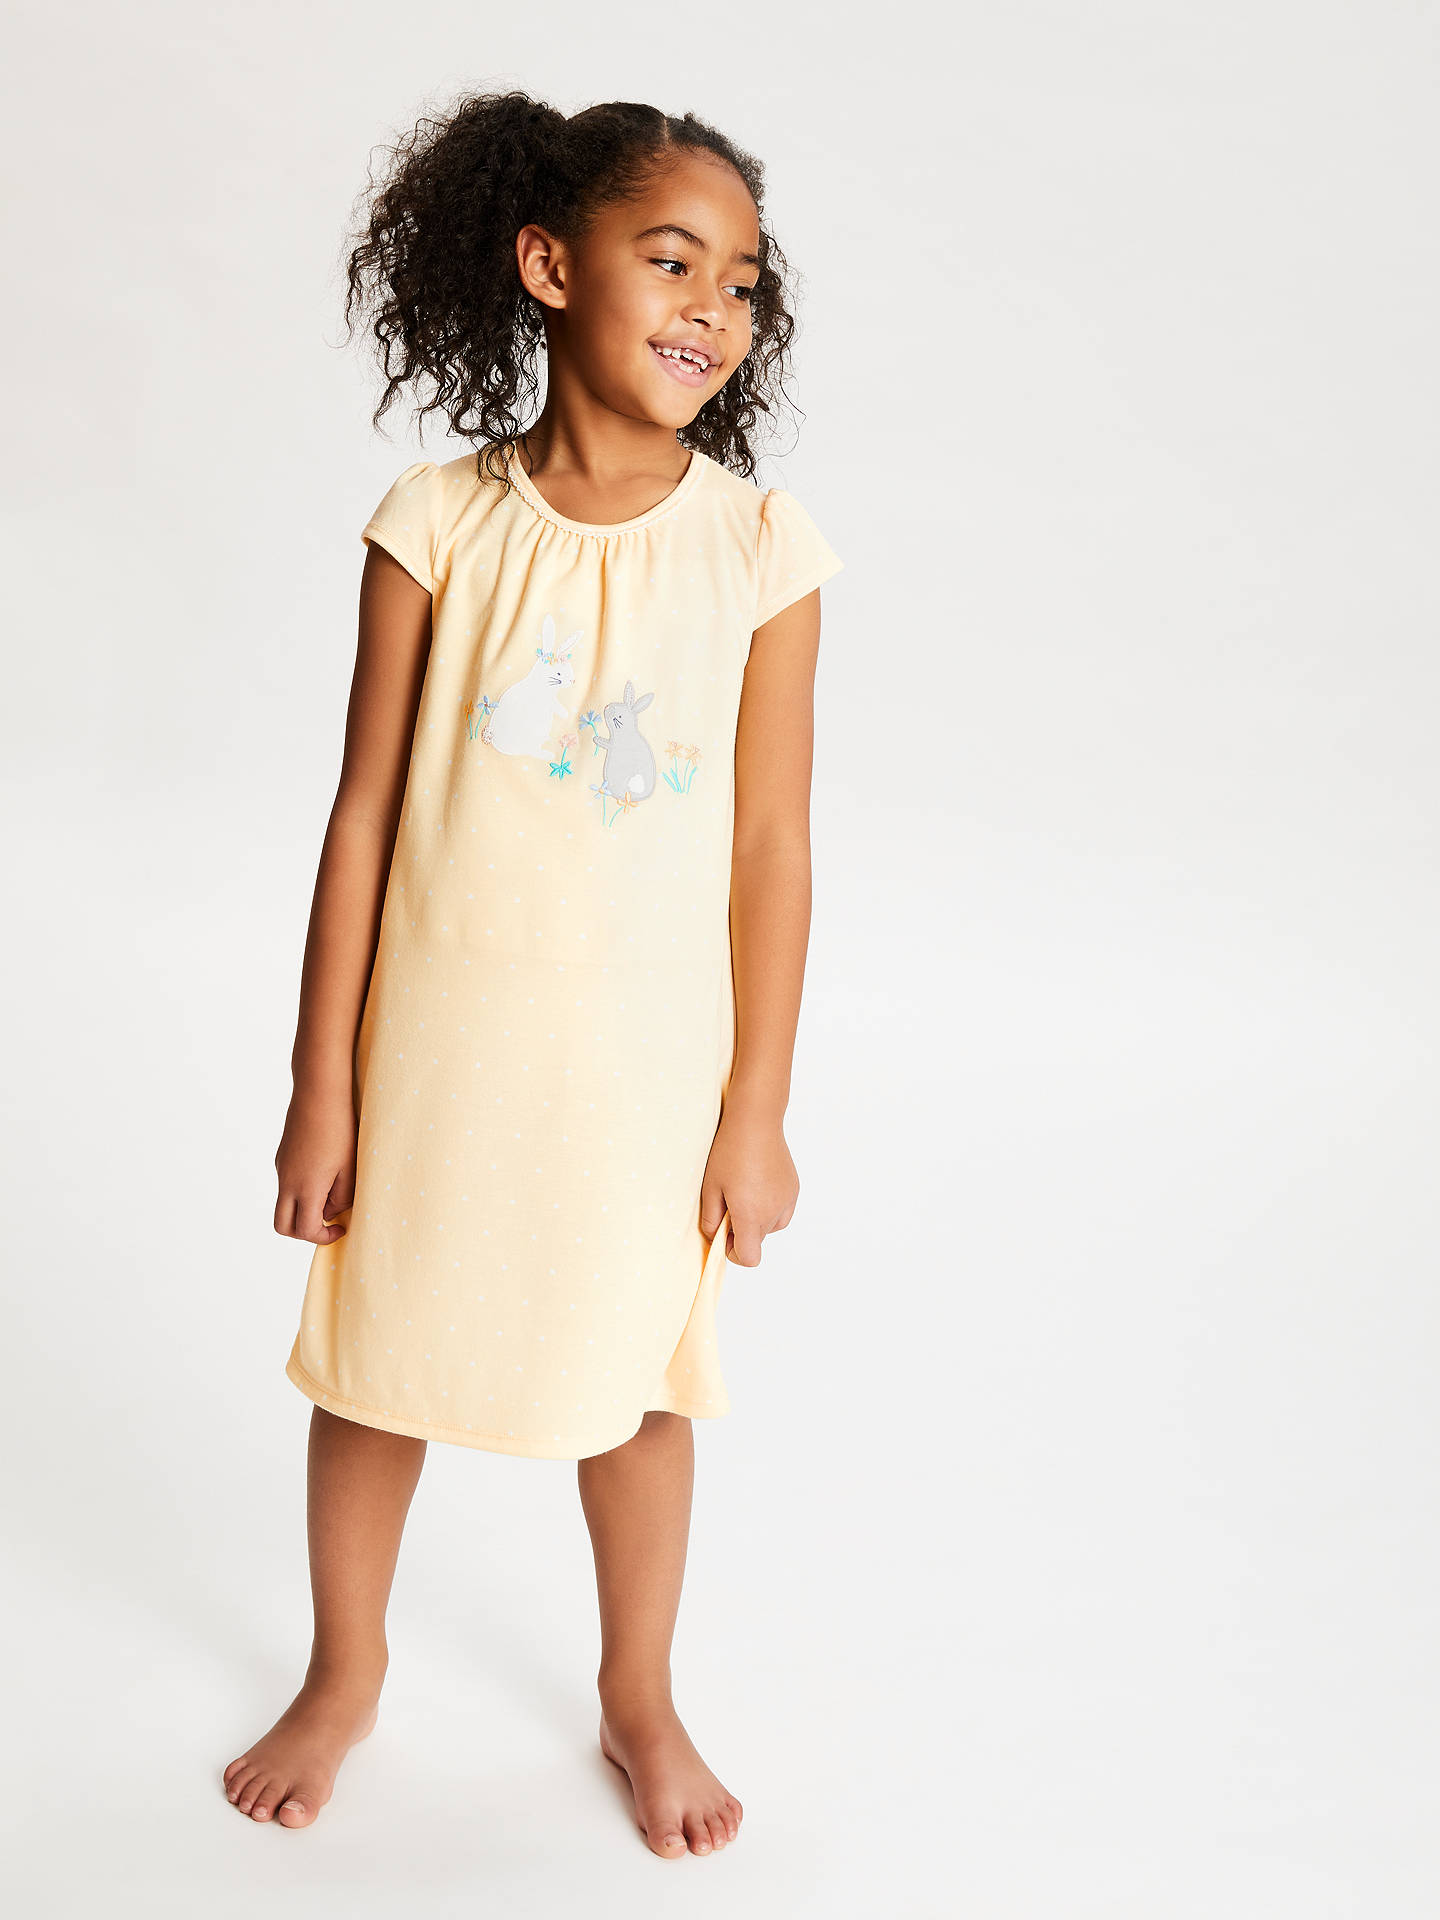 418f111901 Buy John Lewis & Partners Girls' Bunny Applique Night Dress, Yellow, 5  years ...